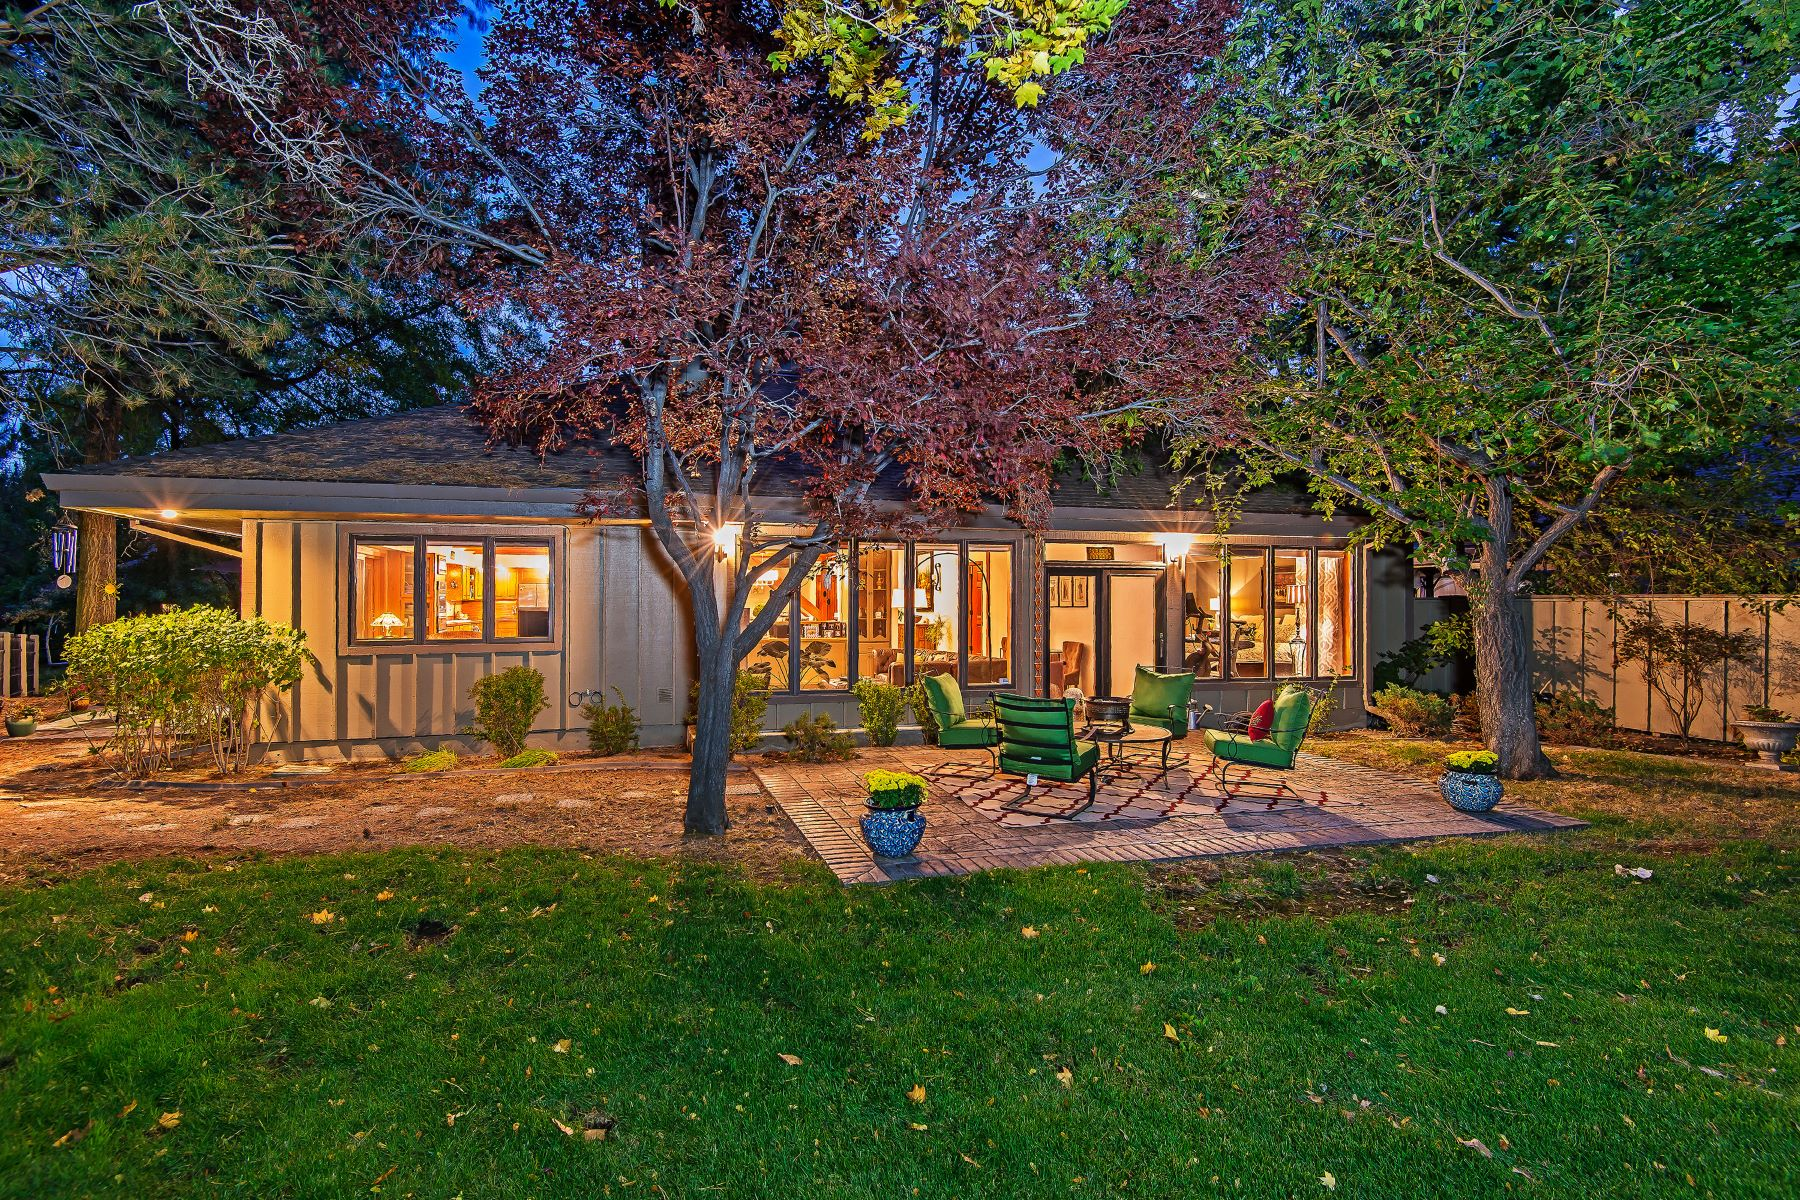 Additional photo for property listing at 3835 Caughlin Pkwy, Reno, Nevada 3835 Caughlin Pkwy Reno, Nevada 89519 United States